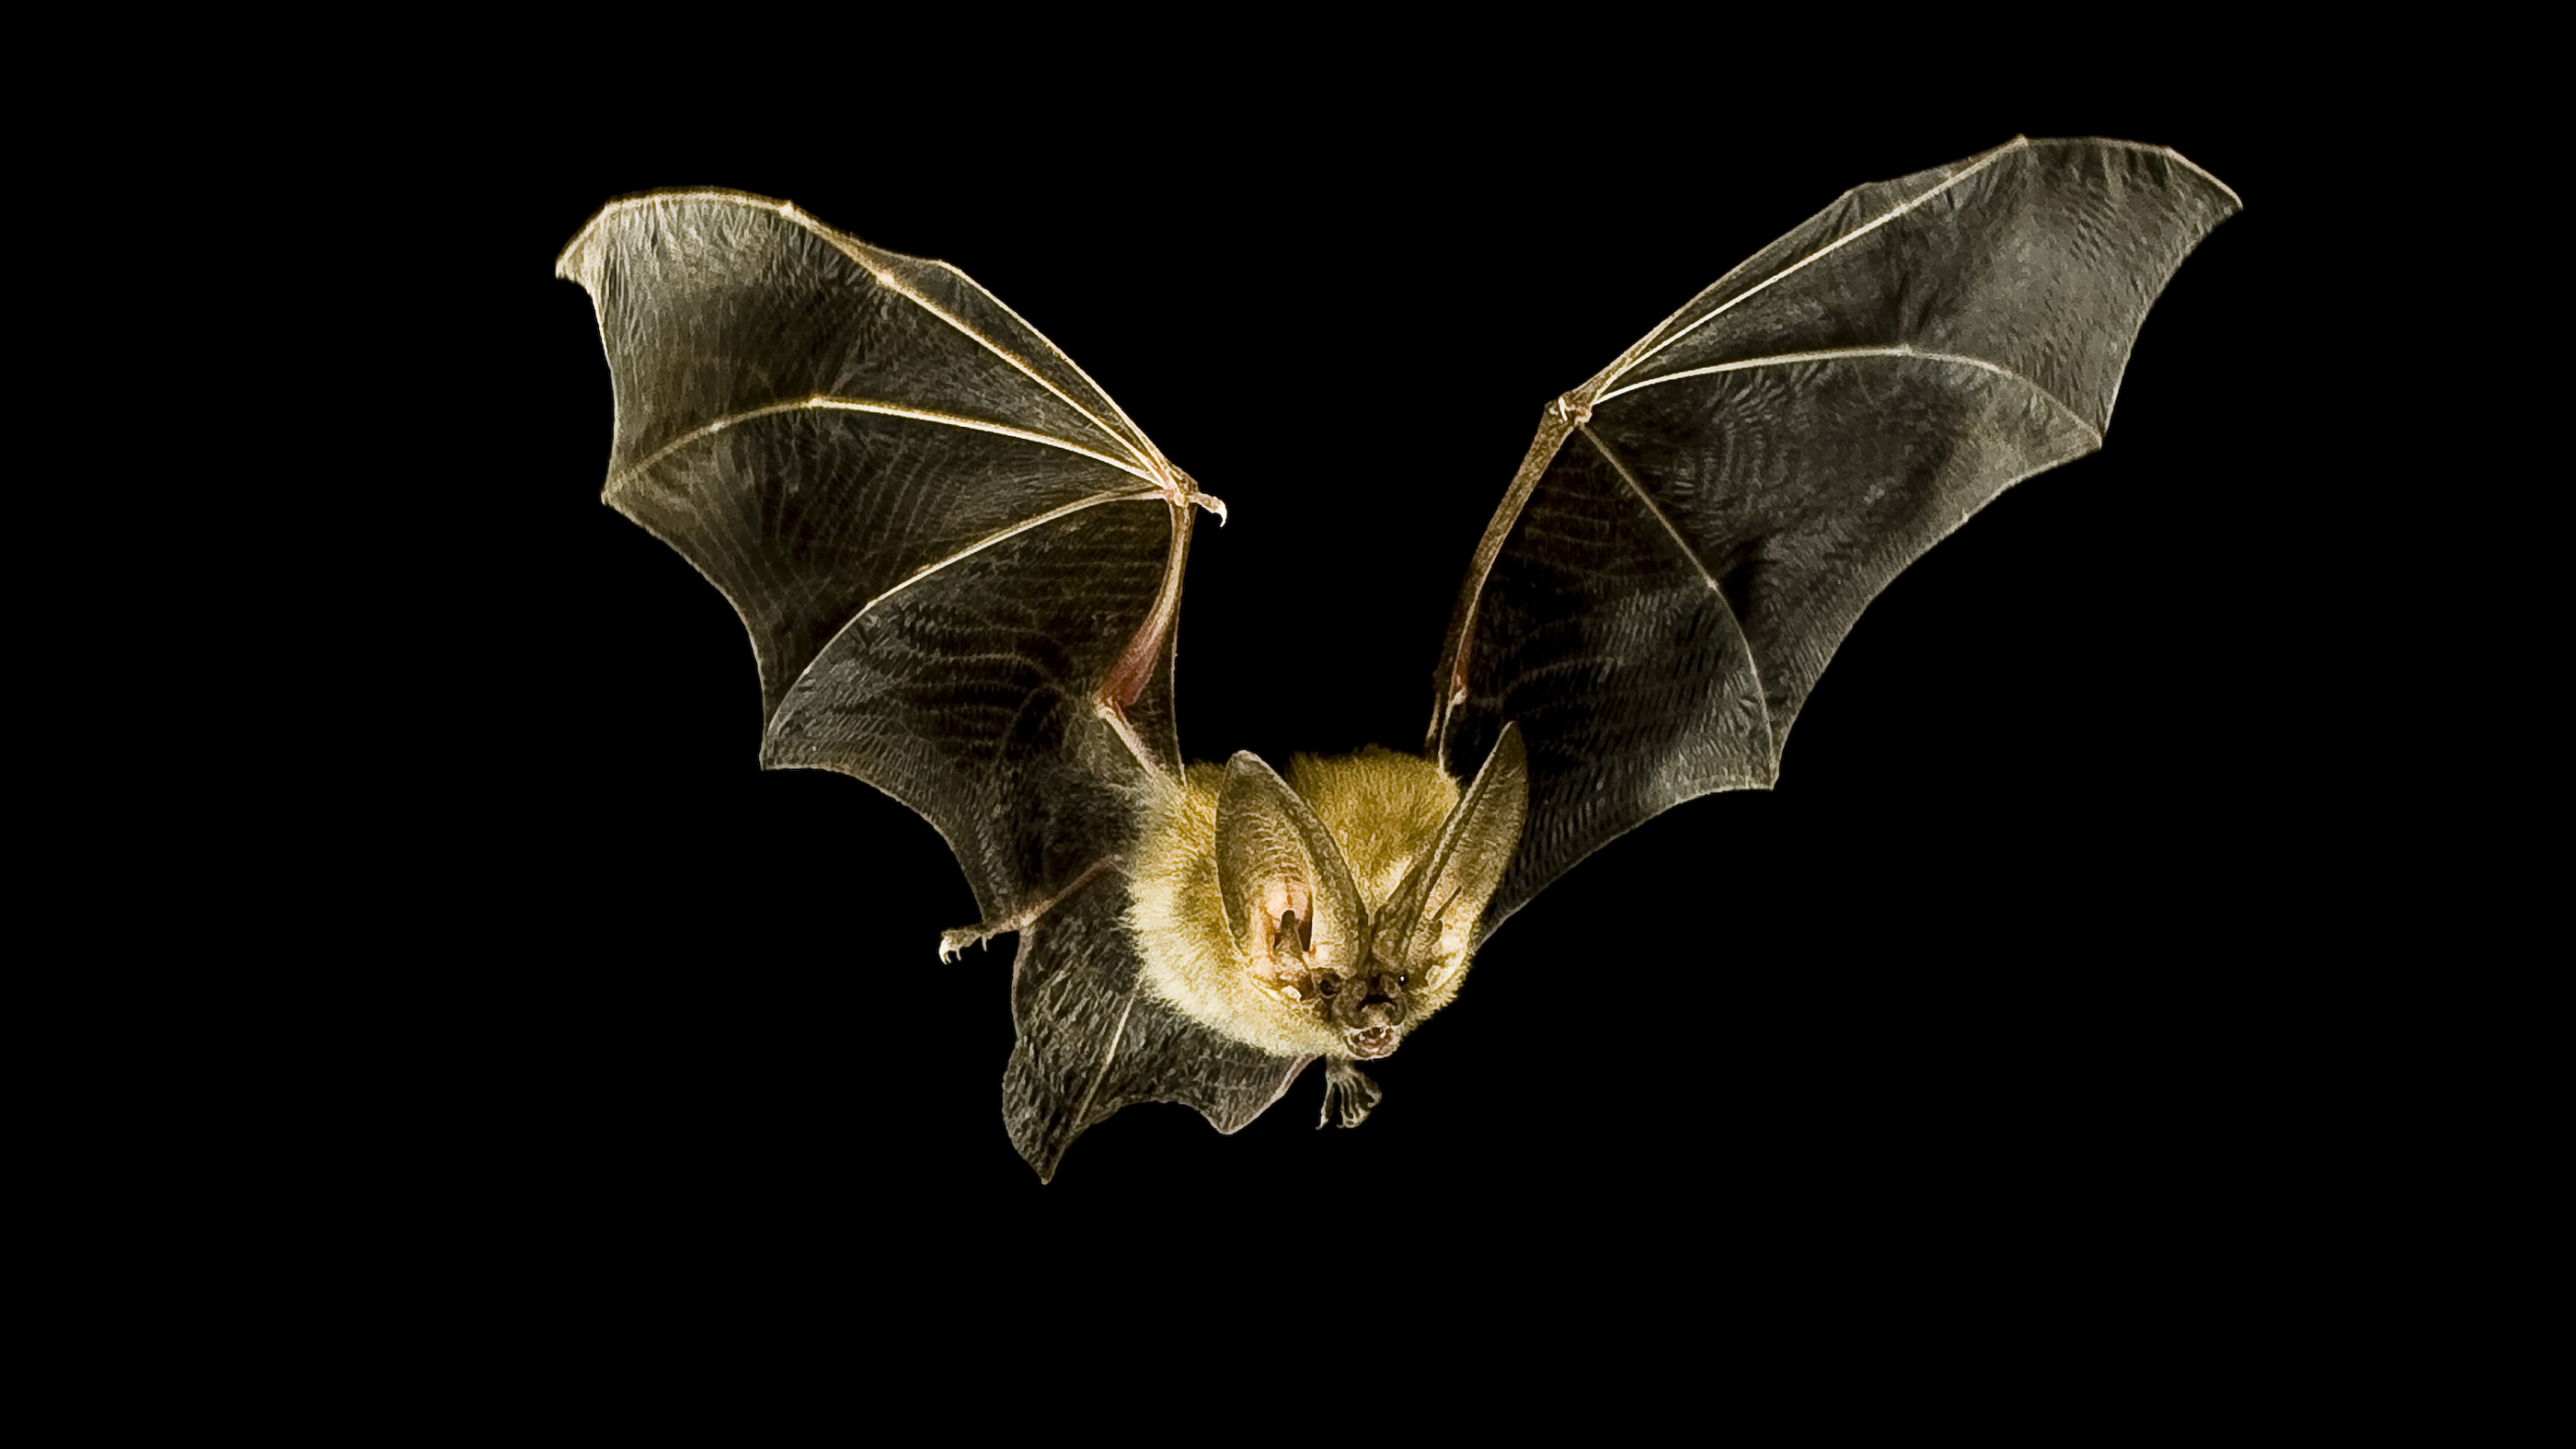 Bats are superheroes of the evening. Their superpowers may assist us shield them. xZhHVkMvKwgDtu8hcBPPsE